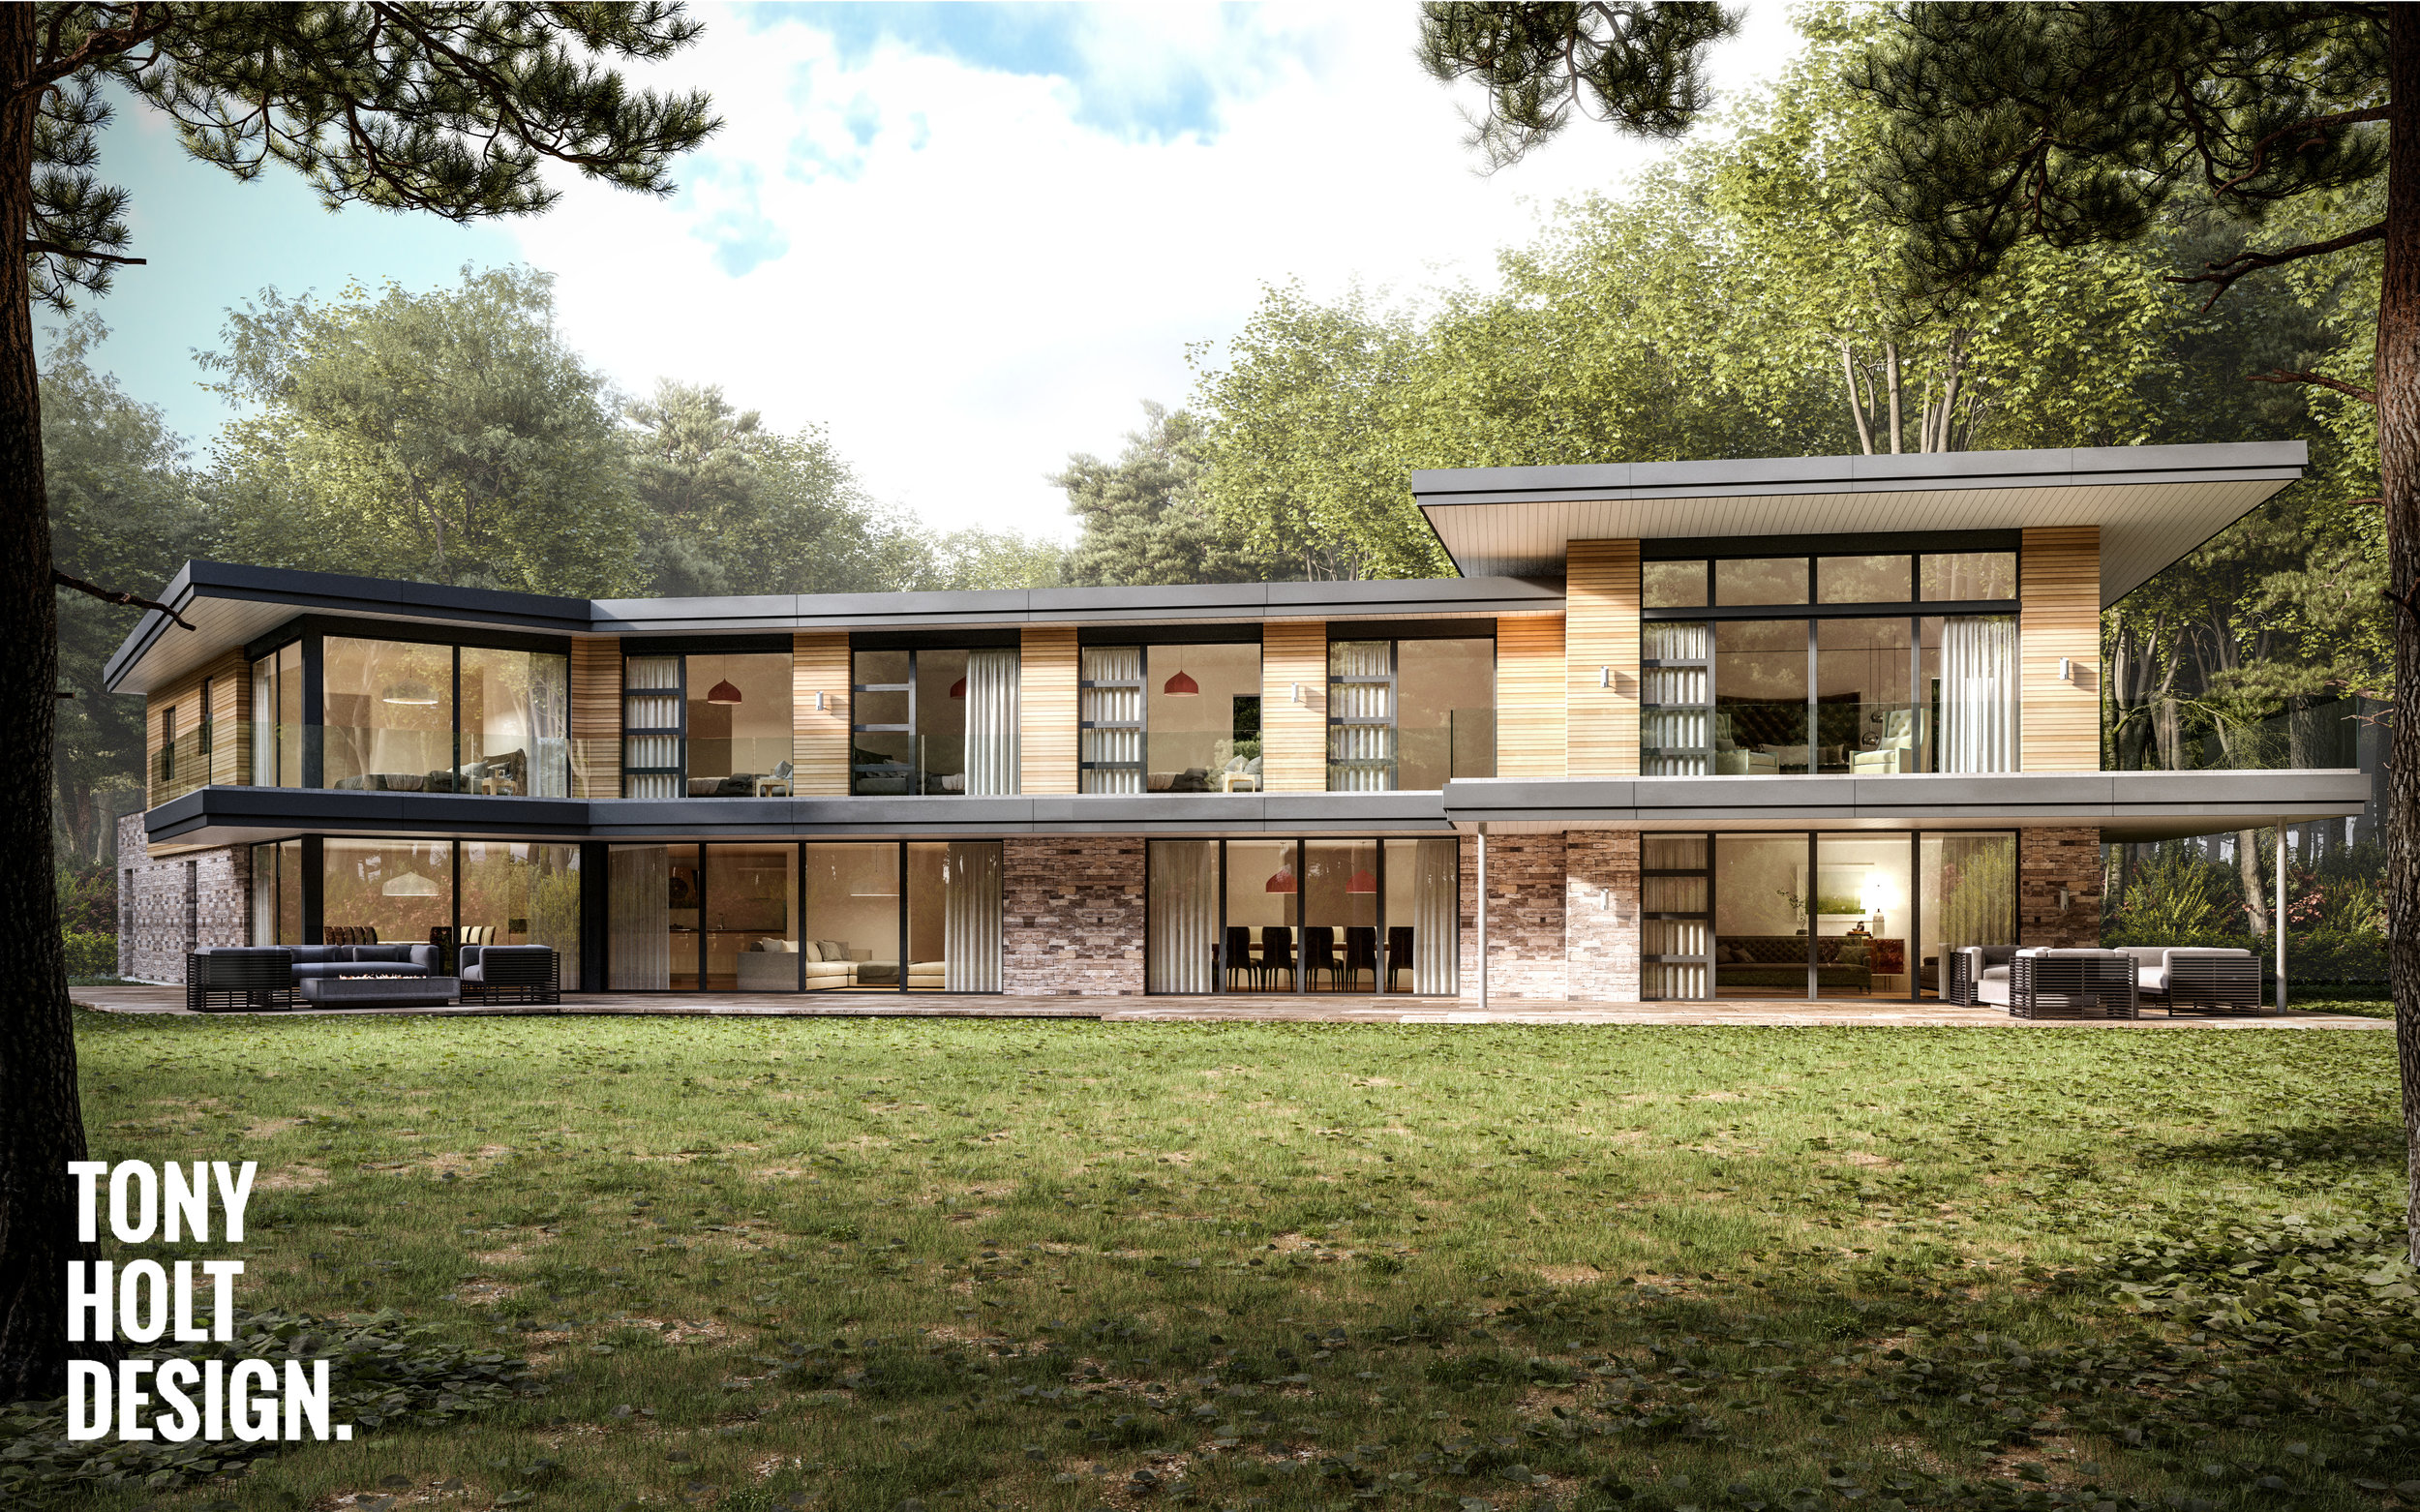 Tony Holt Design_Self Build_New Build_New House 02_CGI.jpg